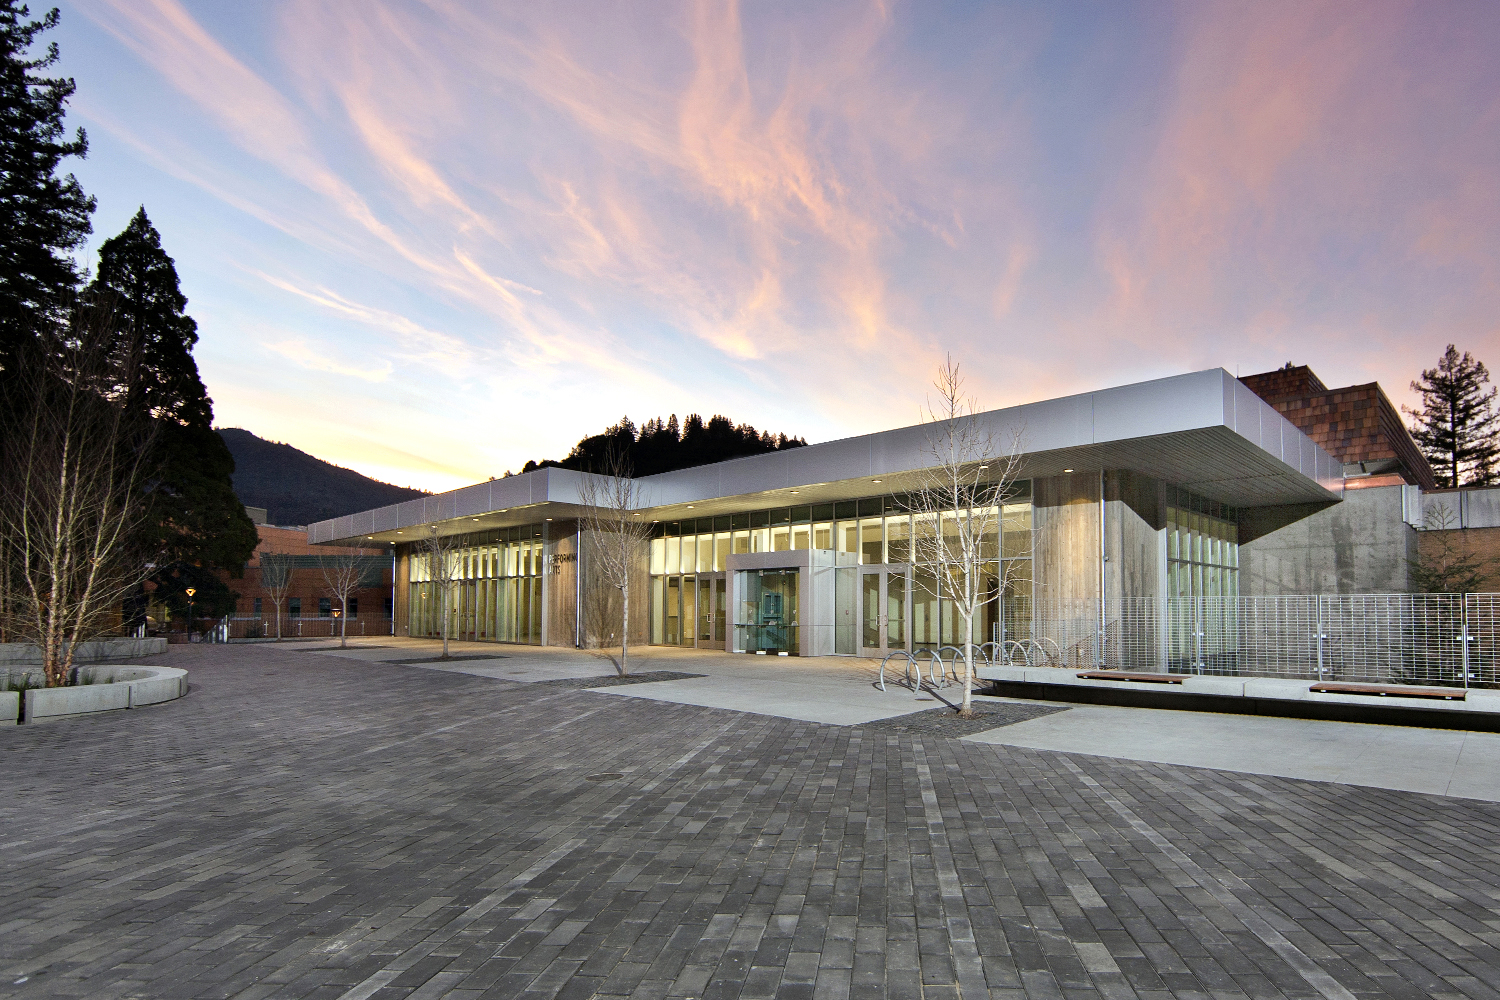 03_Projects_Community College Complex - Performing Arts Building.jpg